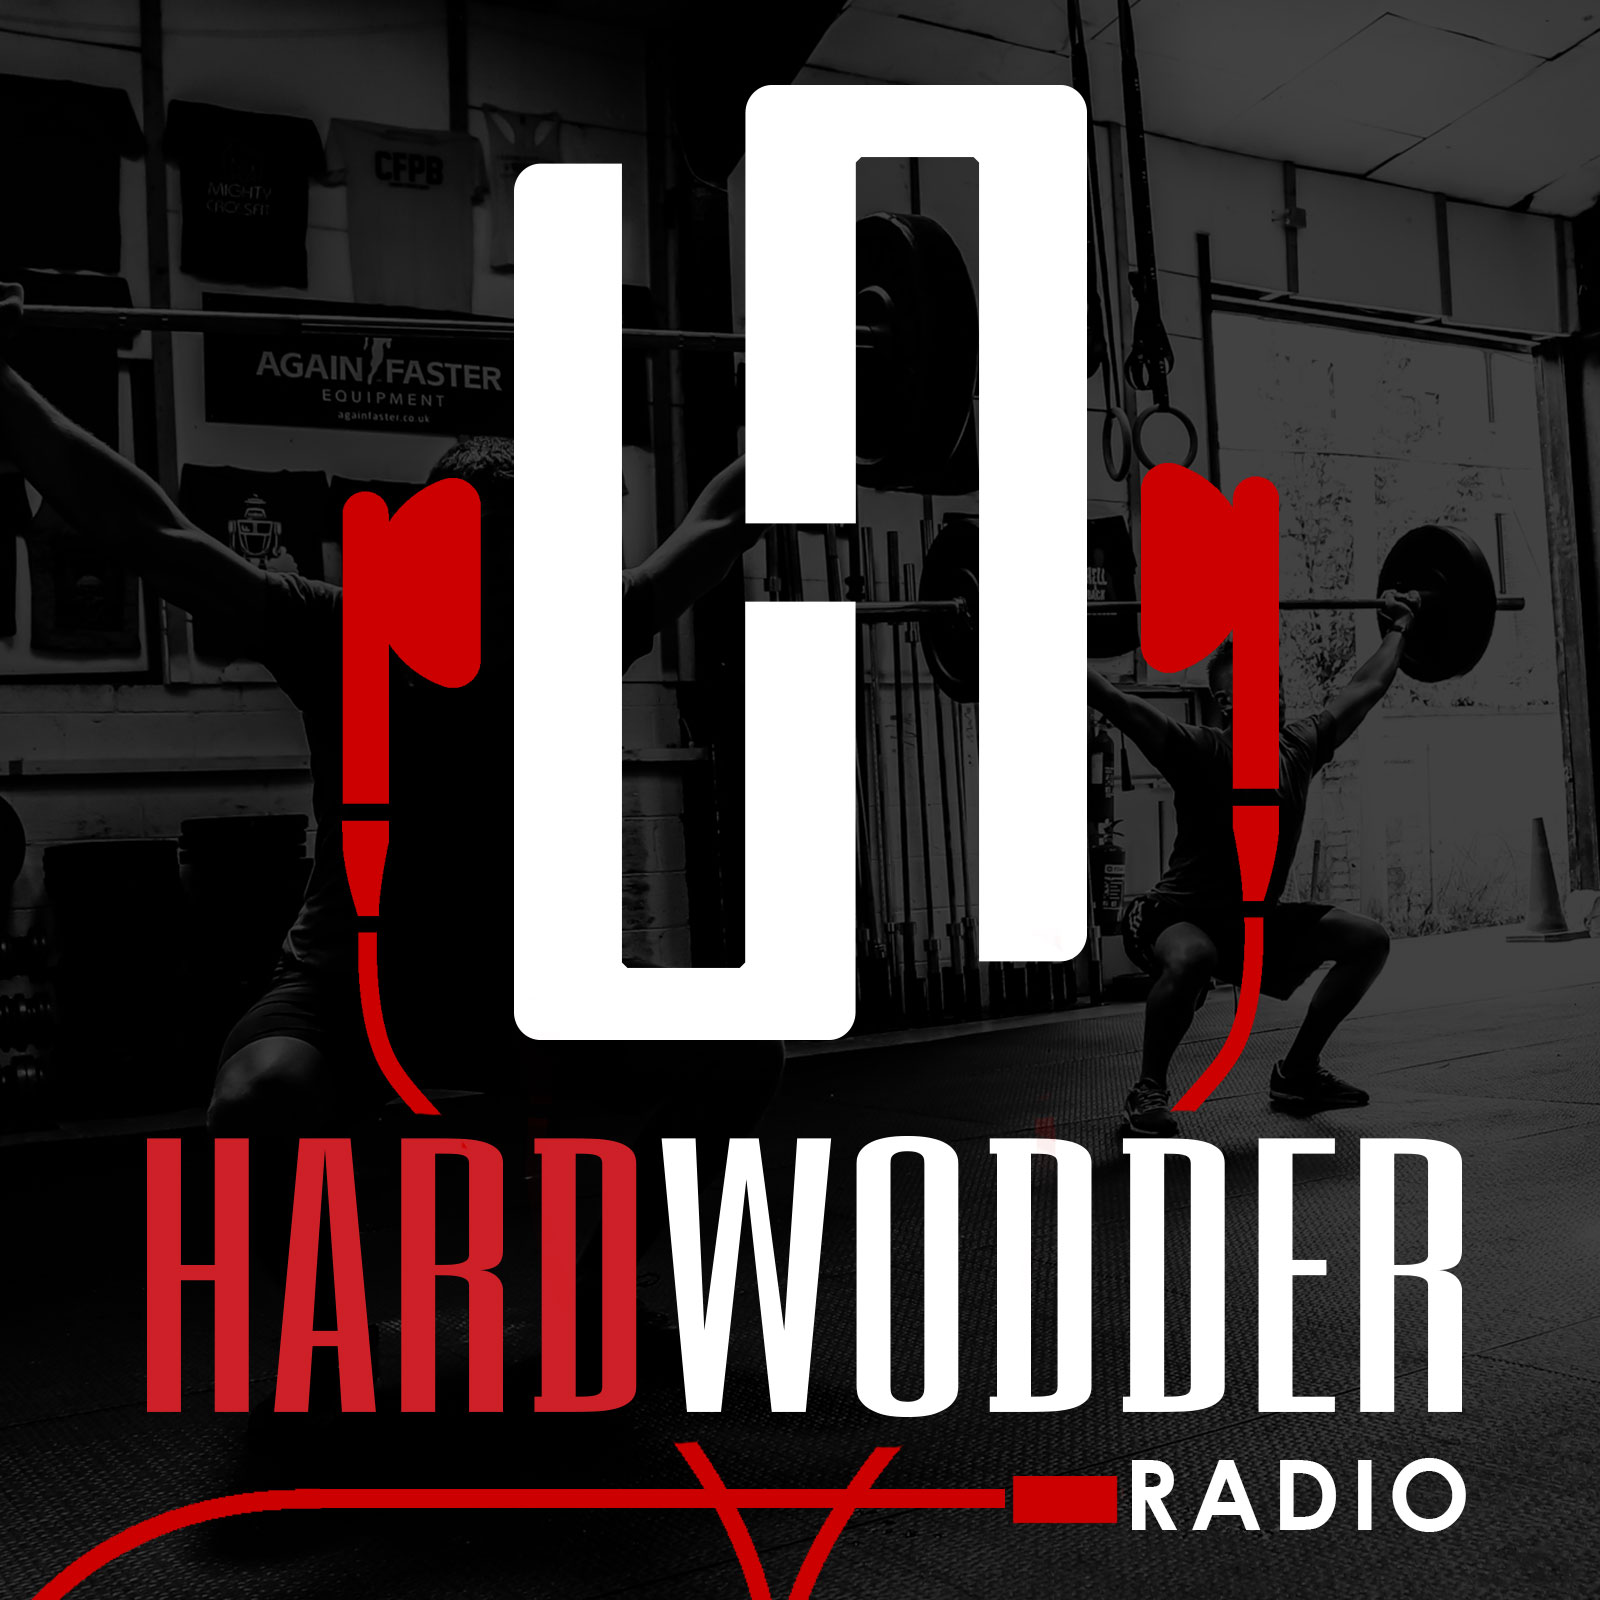 HardWodder Radio